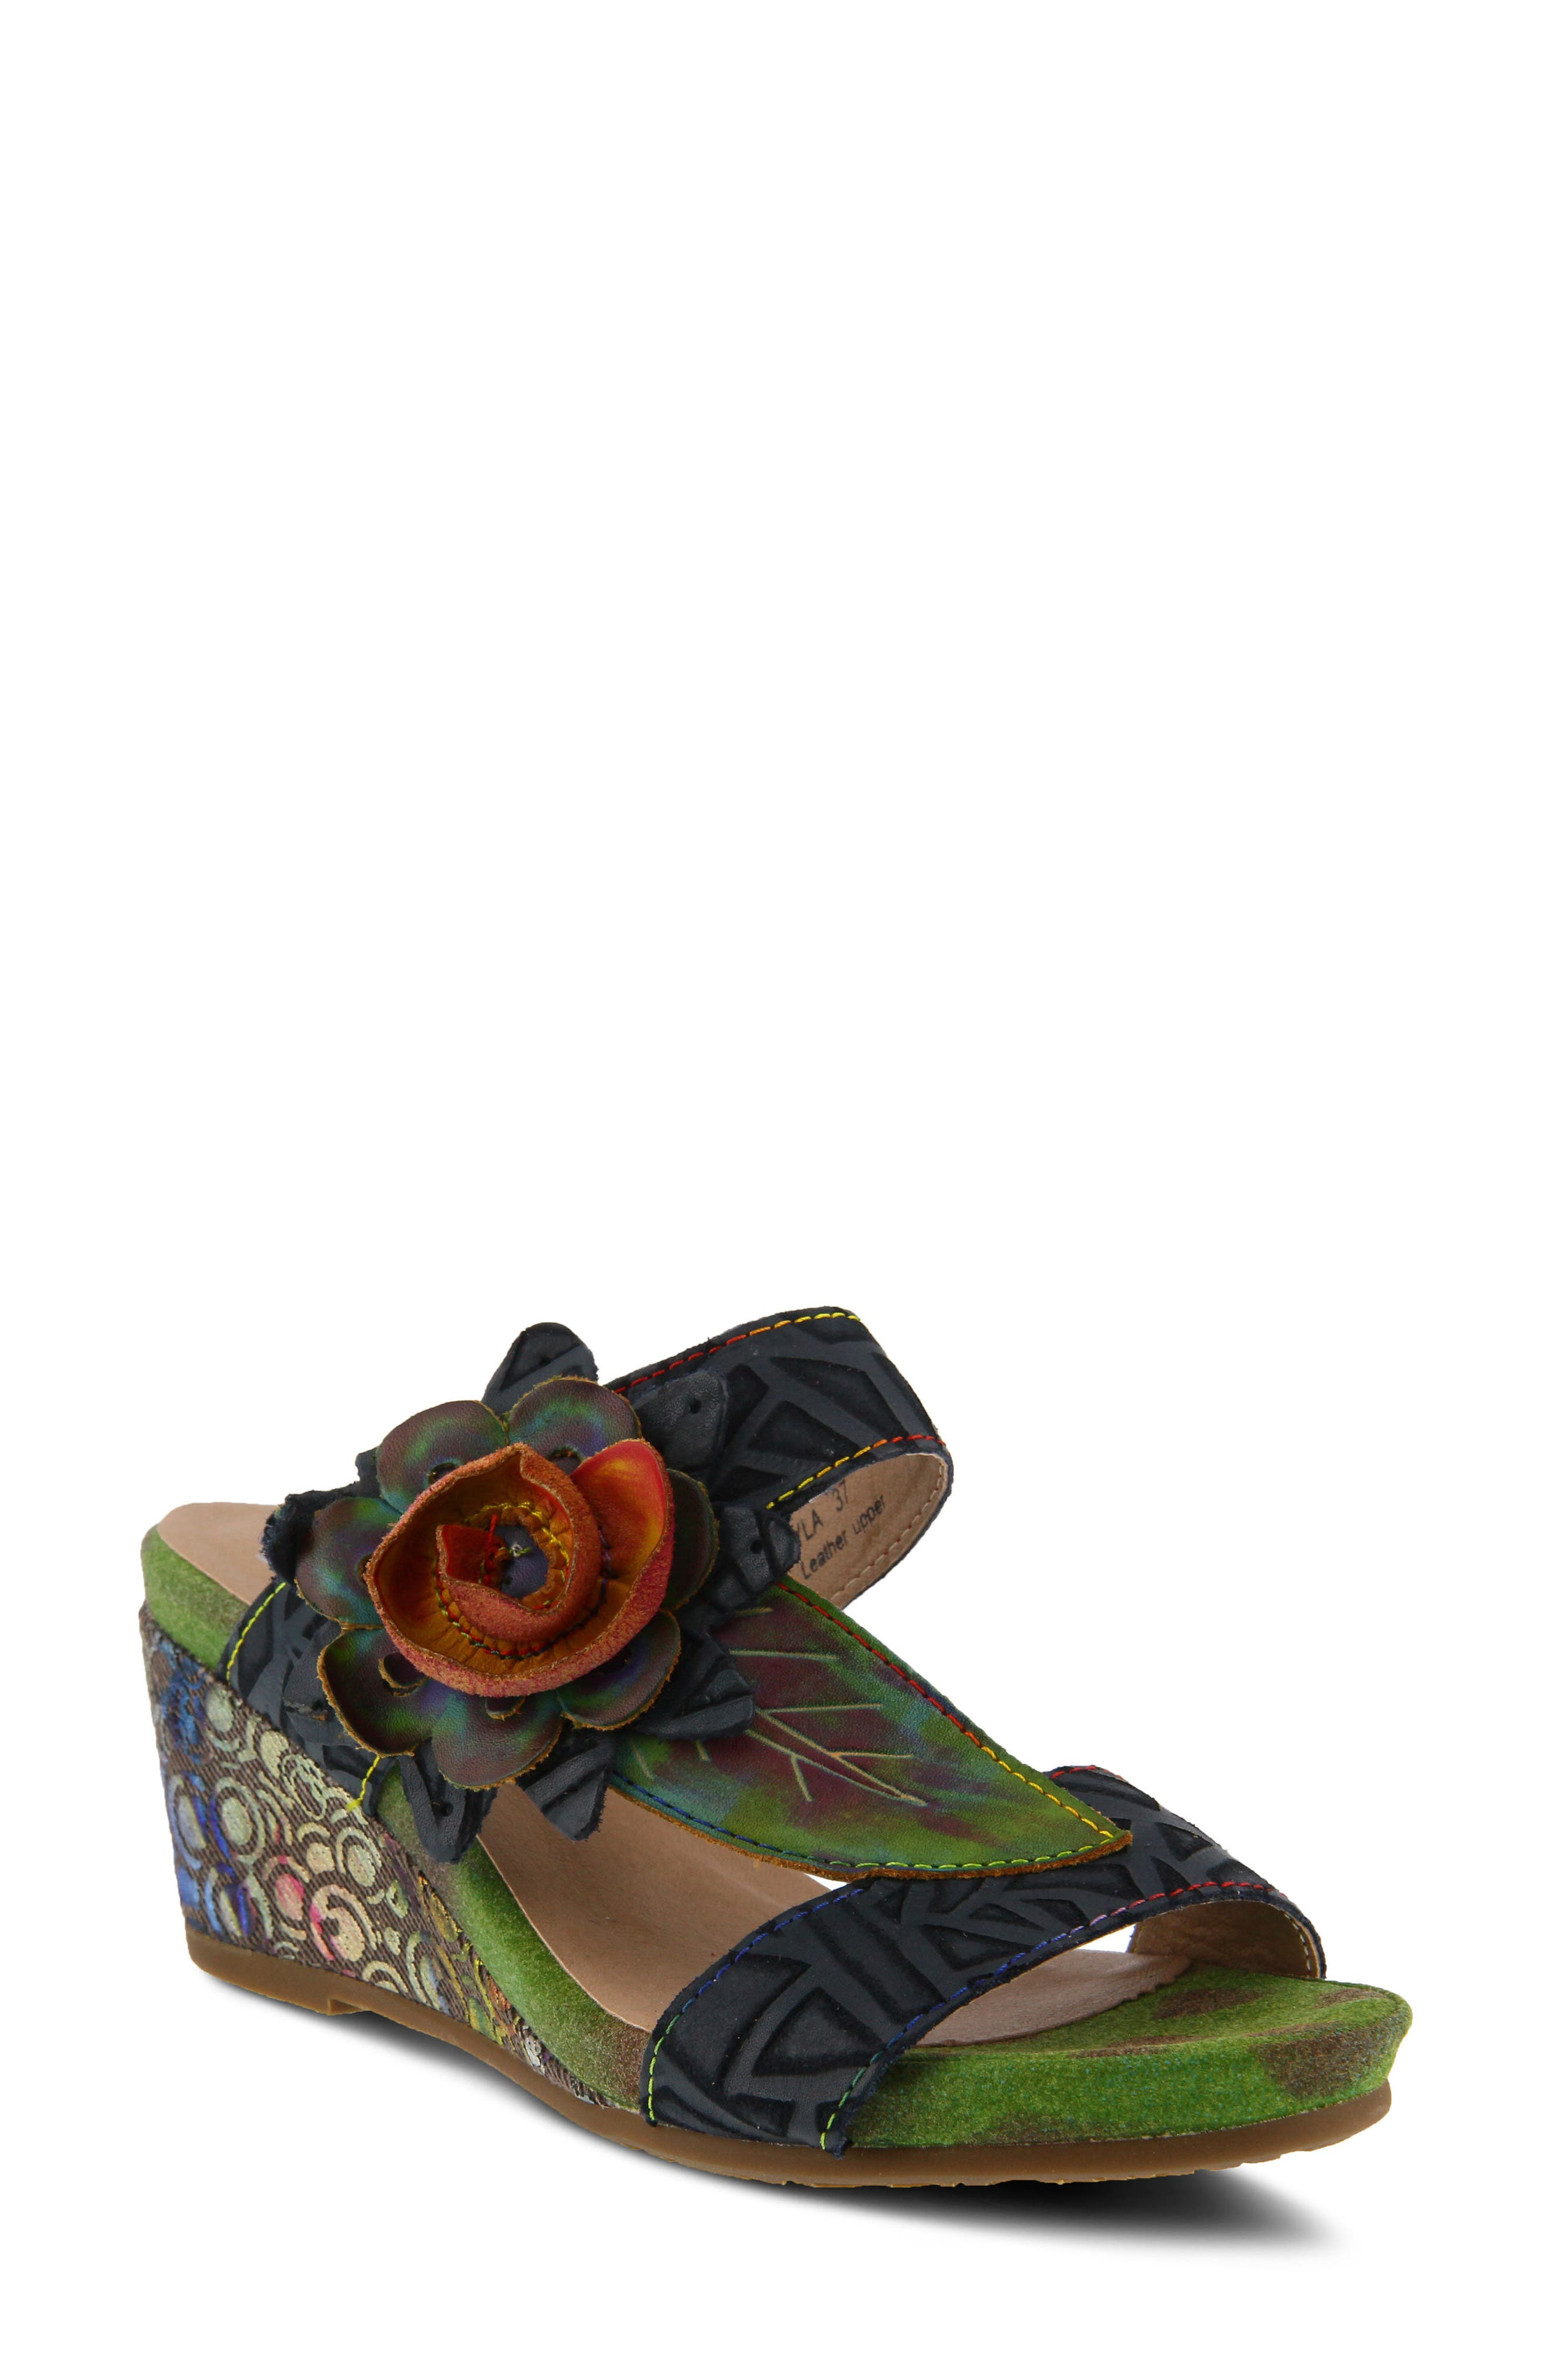 L'Artiste Shayla Wedge Sandal,                             Main thumbnail 1, color,                             NAVY LEATHER